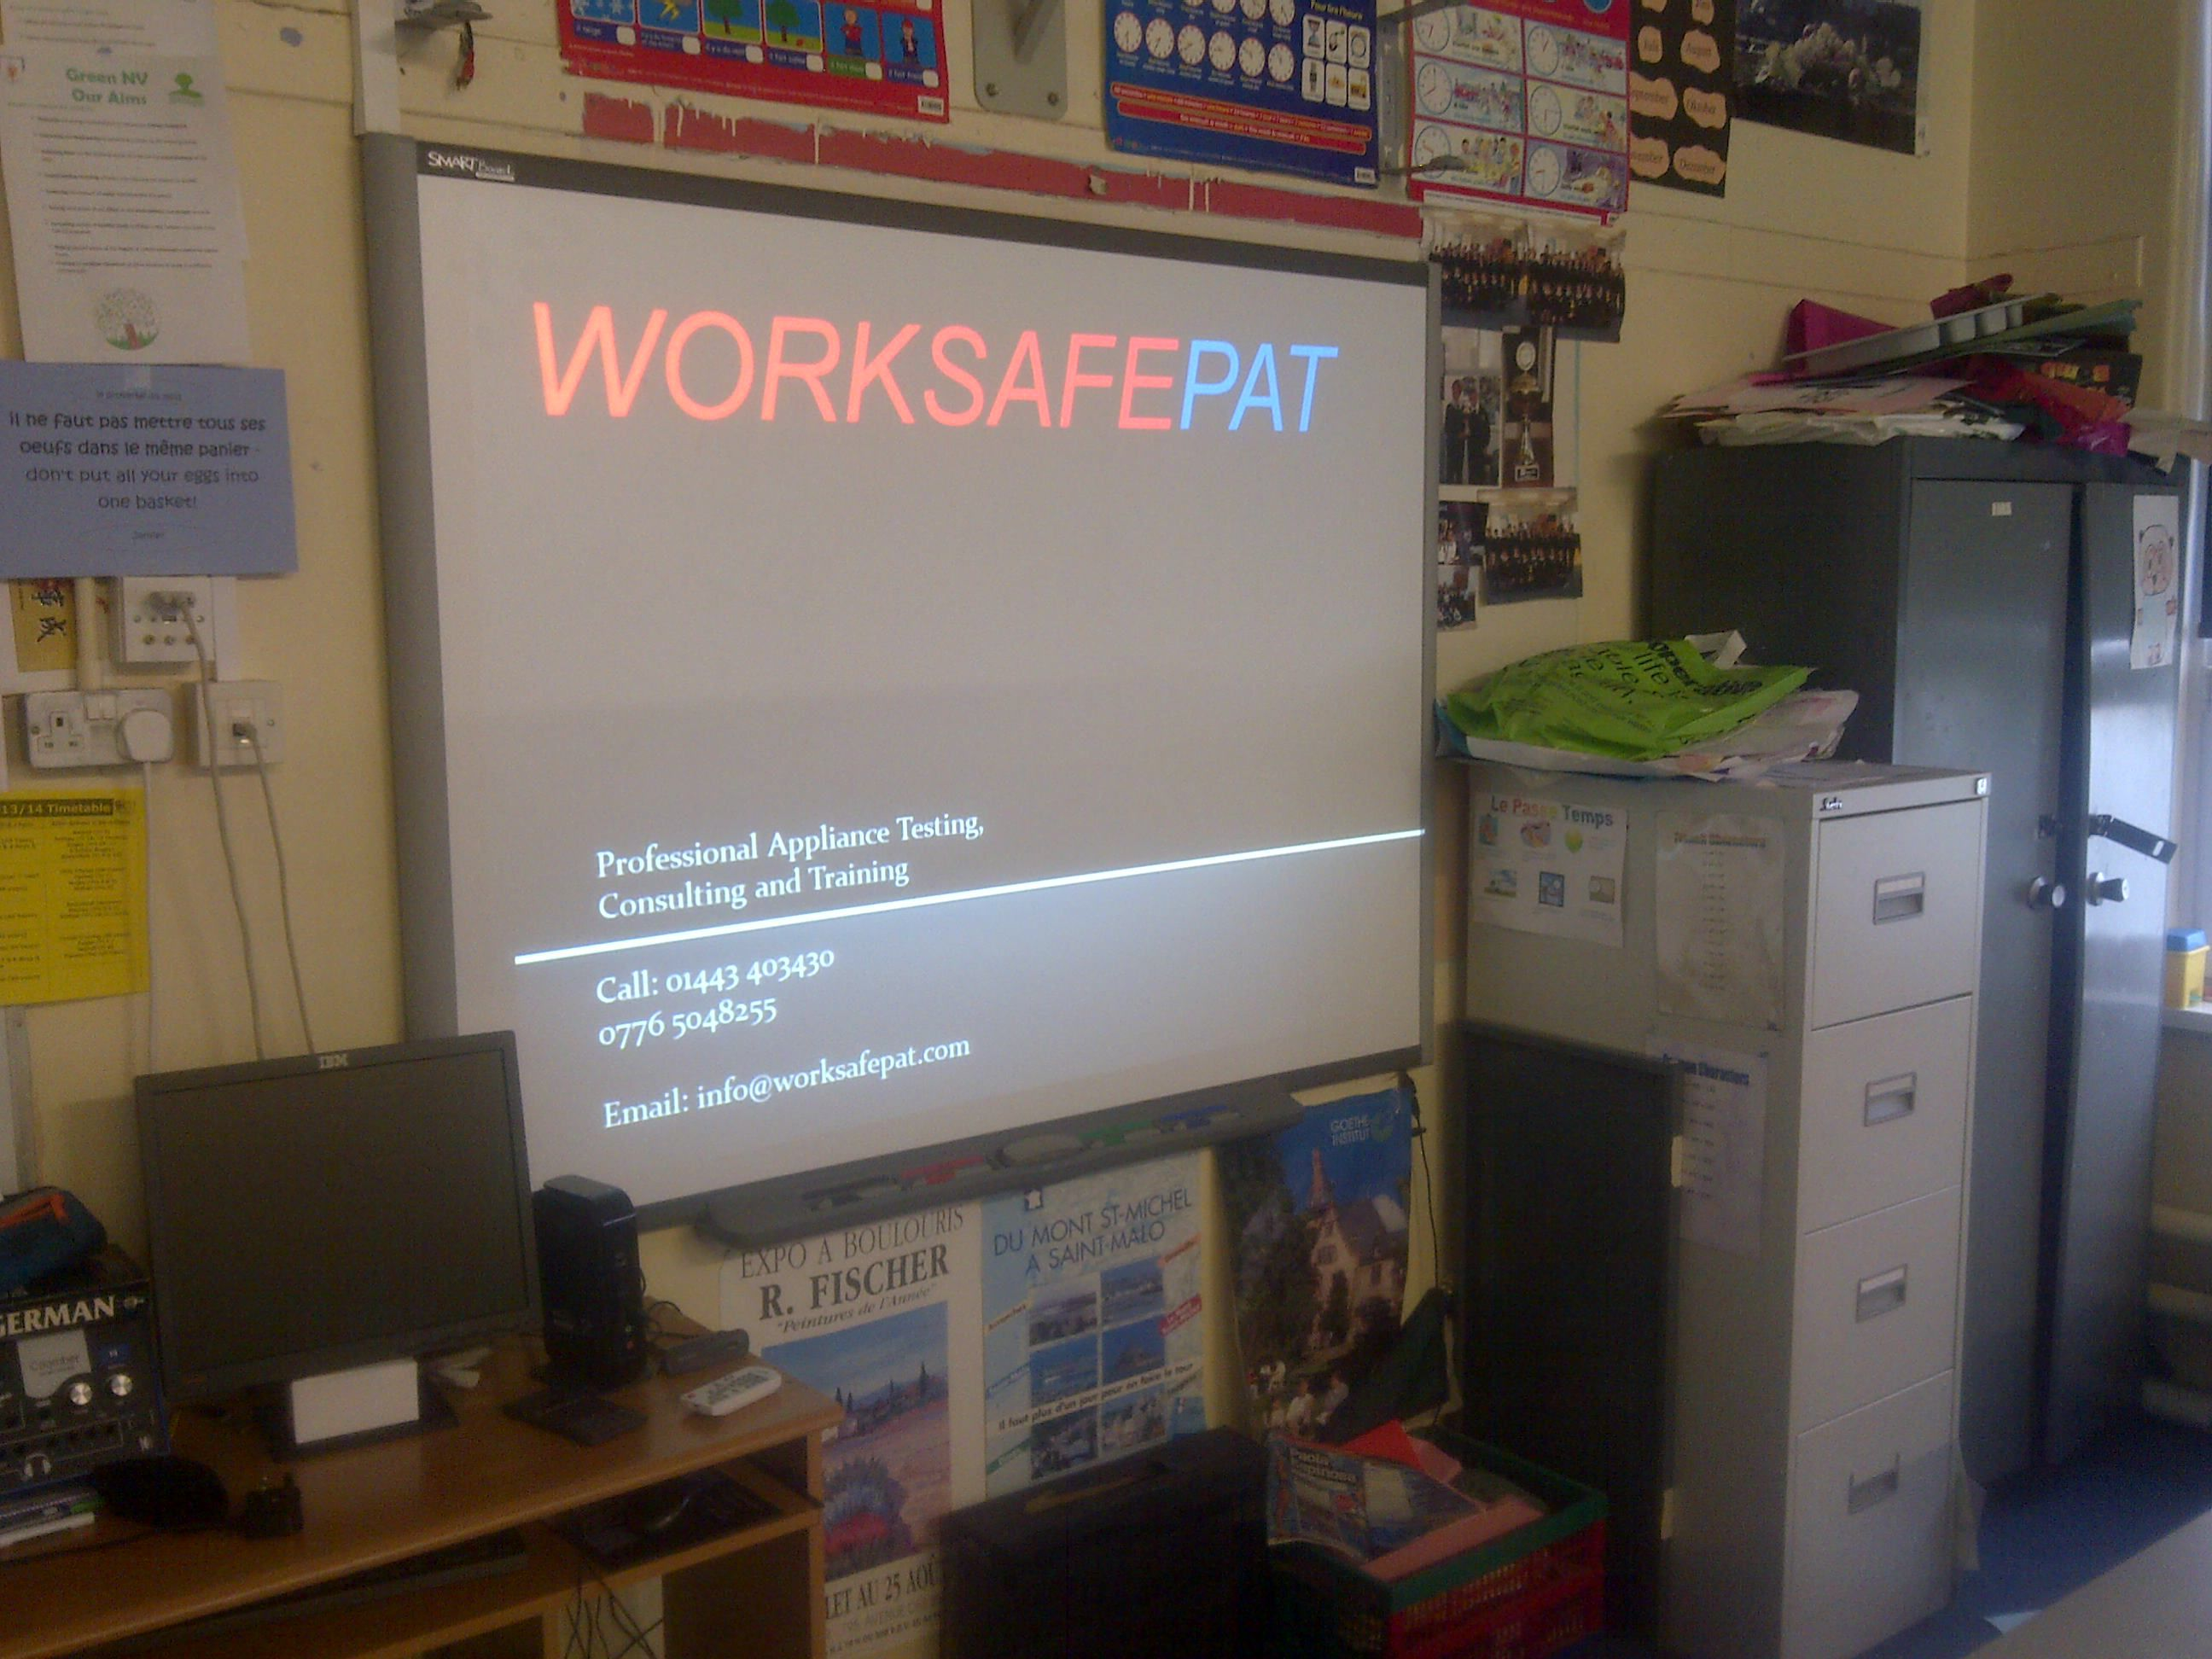 appliance risk management course being held at a comprehensive school being delivered by worksafepat ltd